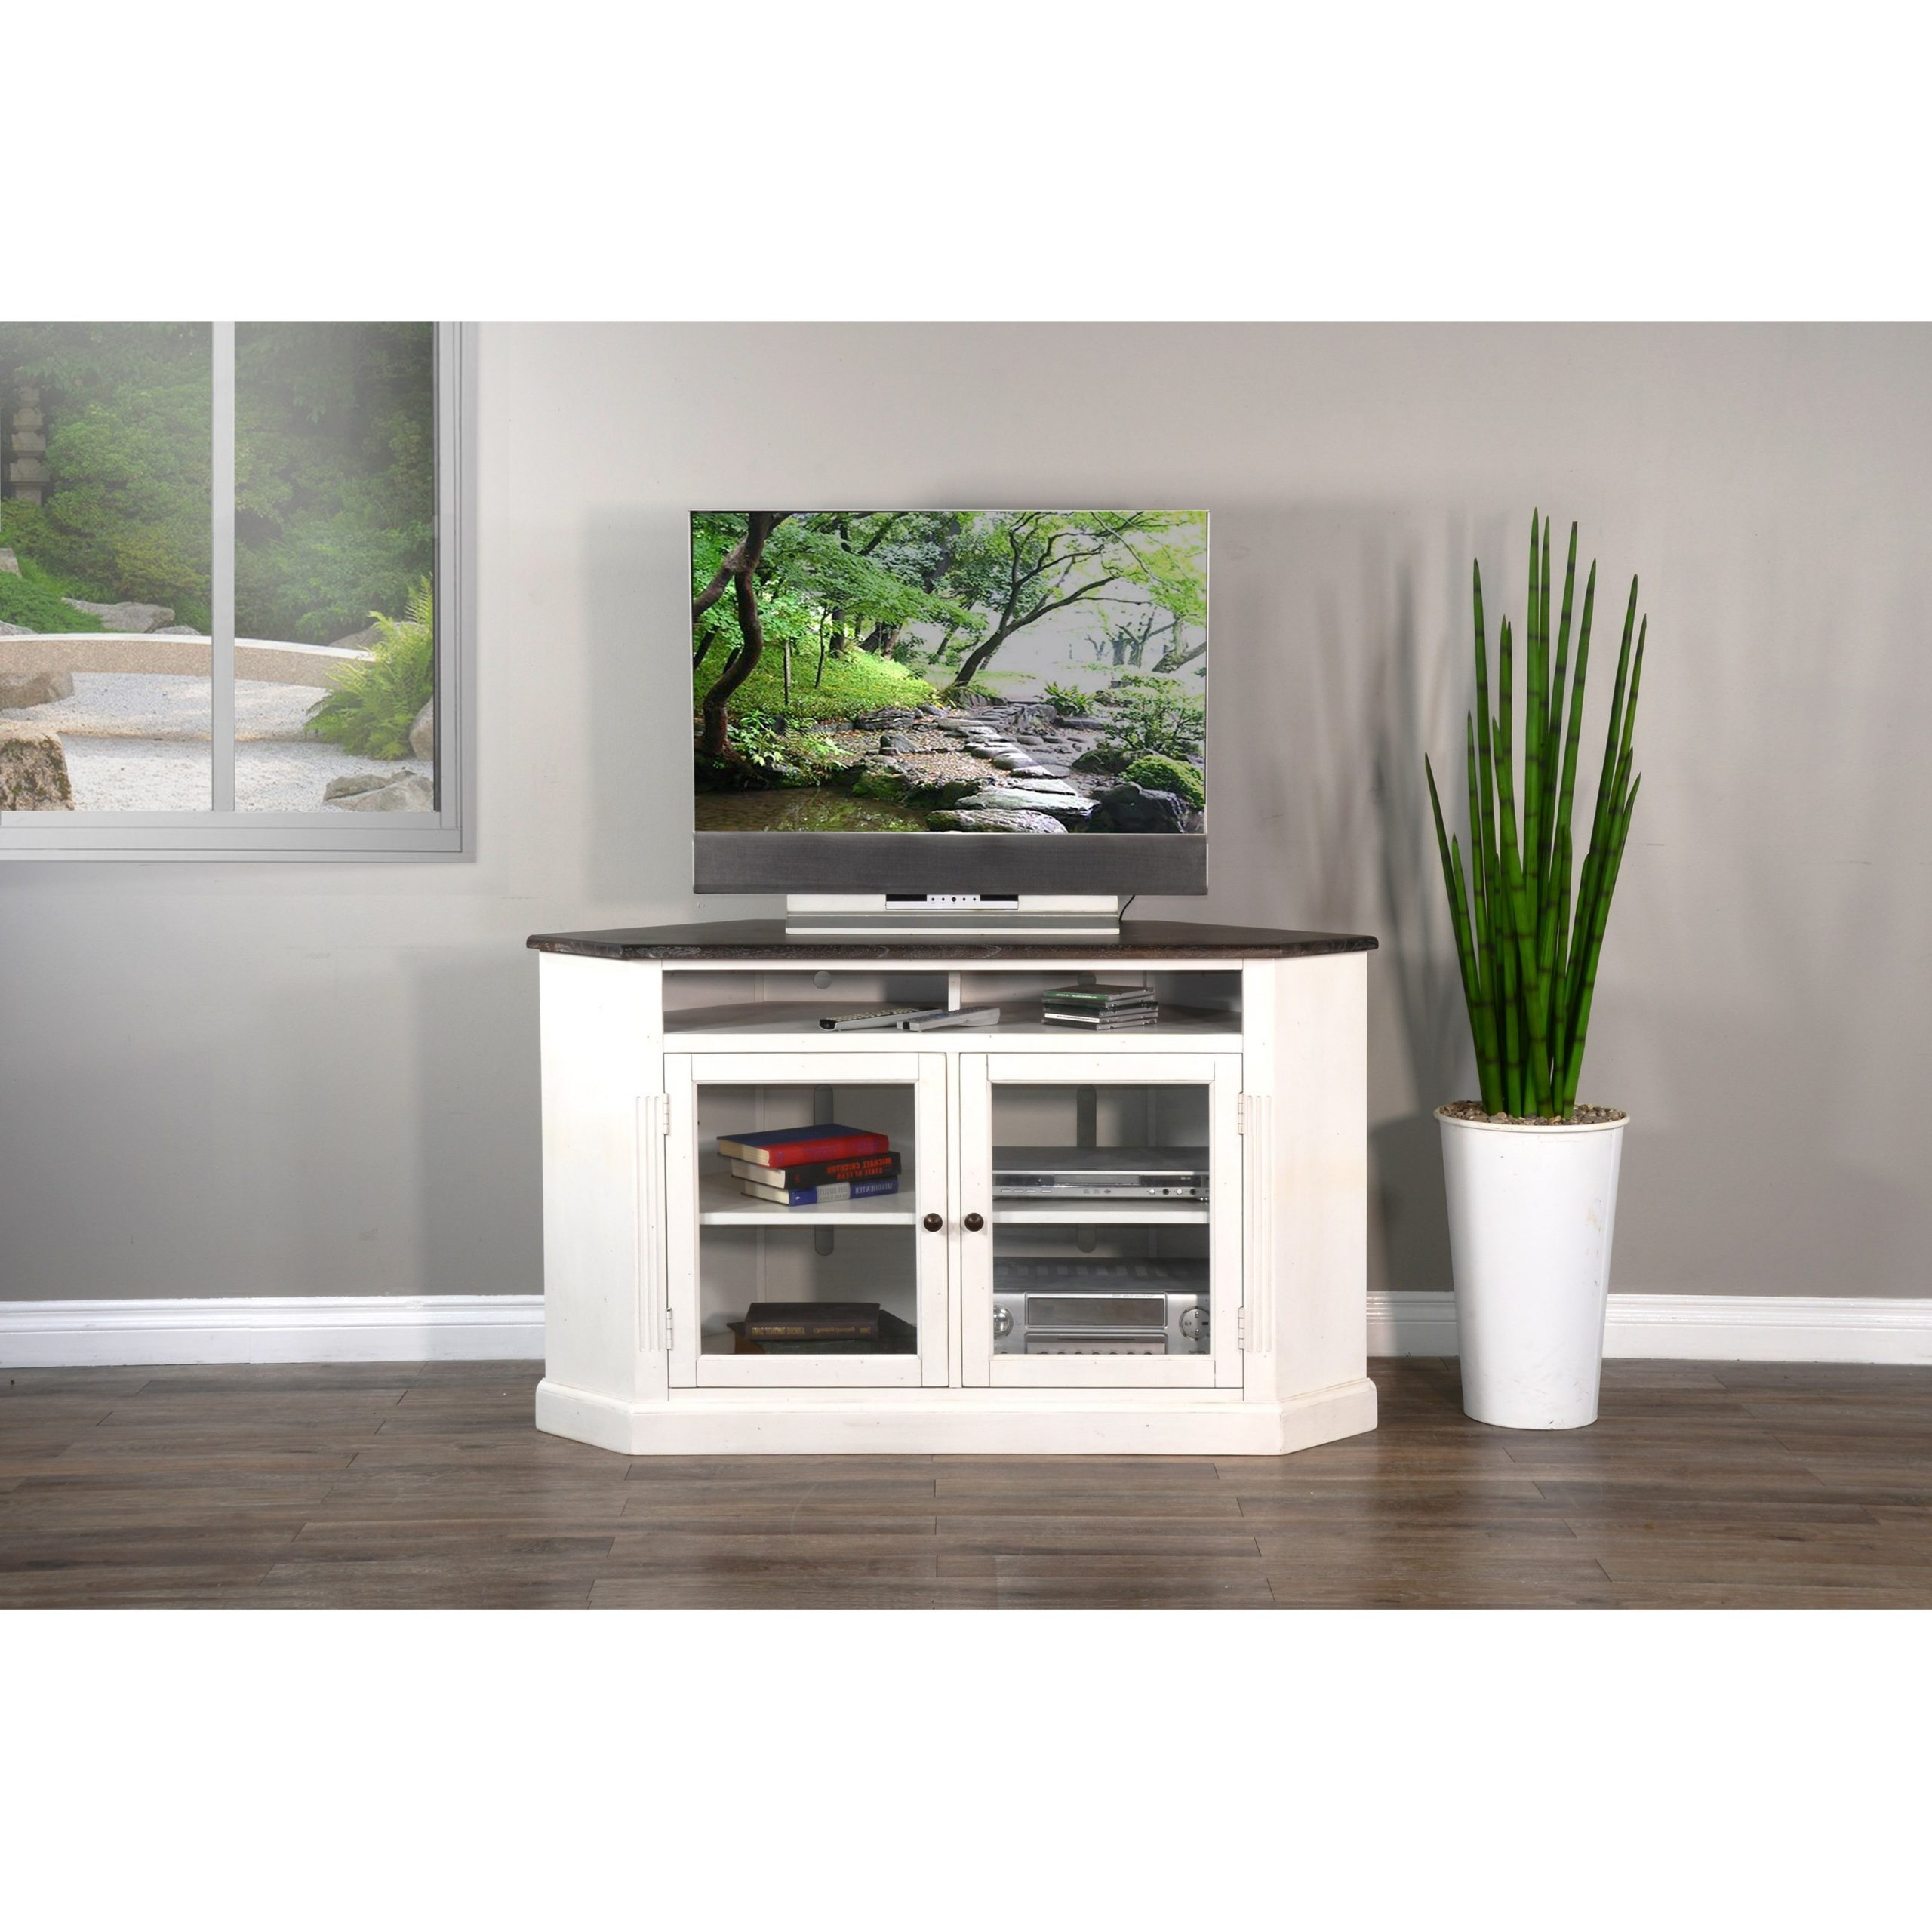 Sunny Designs 3635 Corner Tv Stand With Glass Doors With Regard To Modern 2 Glass Door Corner Tv Stands (View 13 of 20)